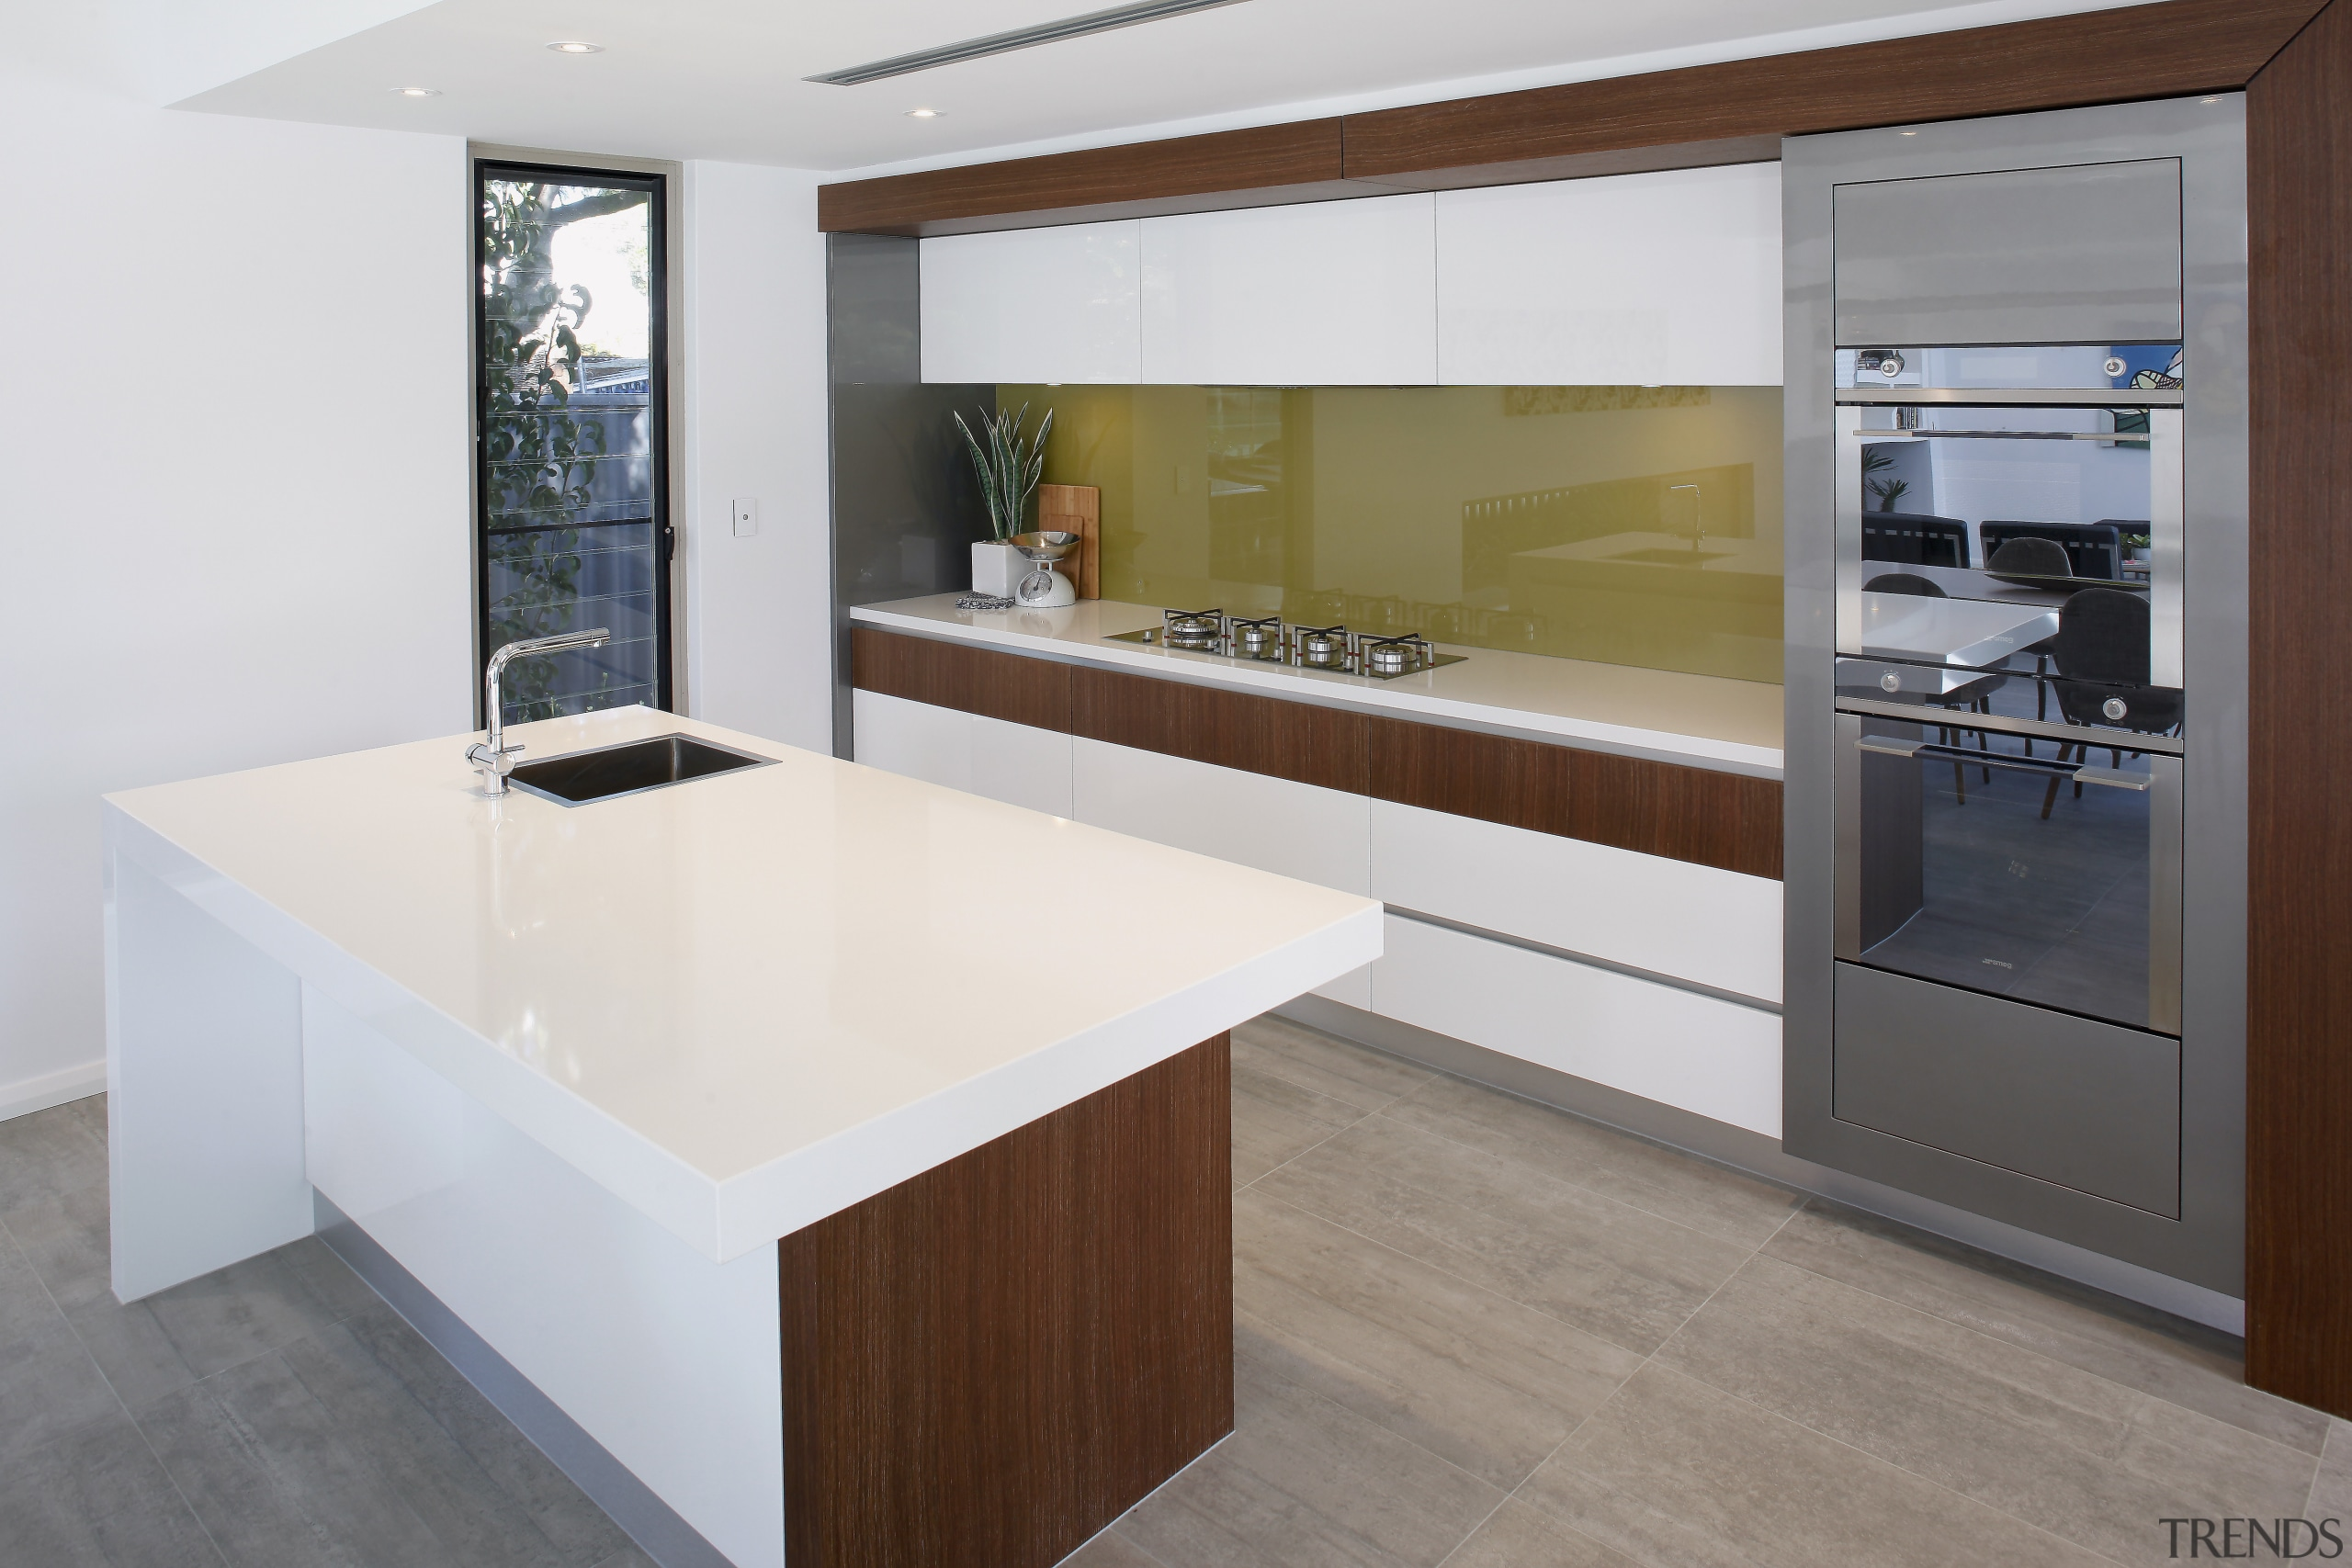 This award-winning kitchen features timber veneer framing around cabinetry, countertop, cuisine classique, floor, interior design, kitchen, real estate, white, gray